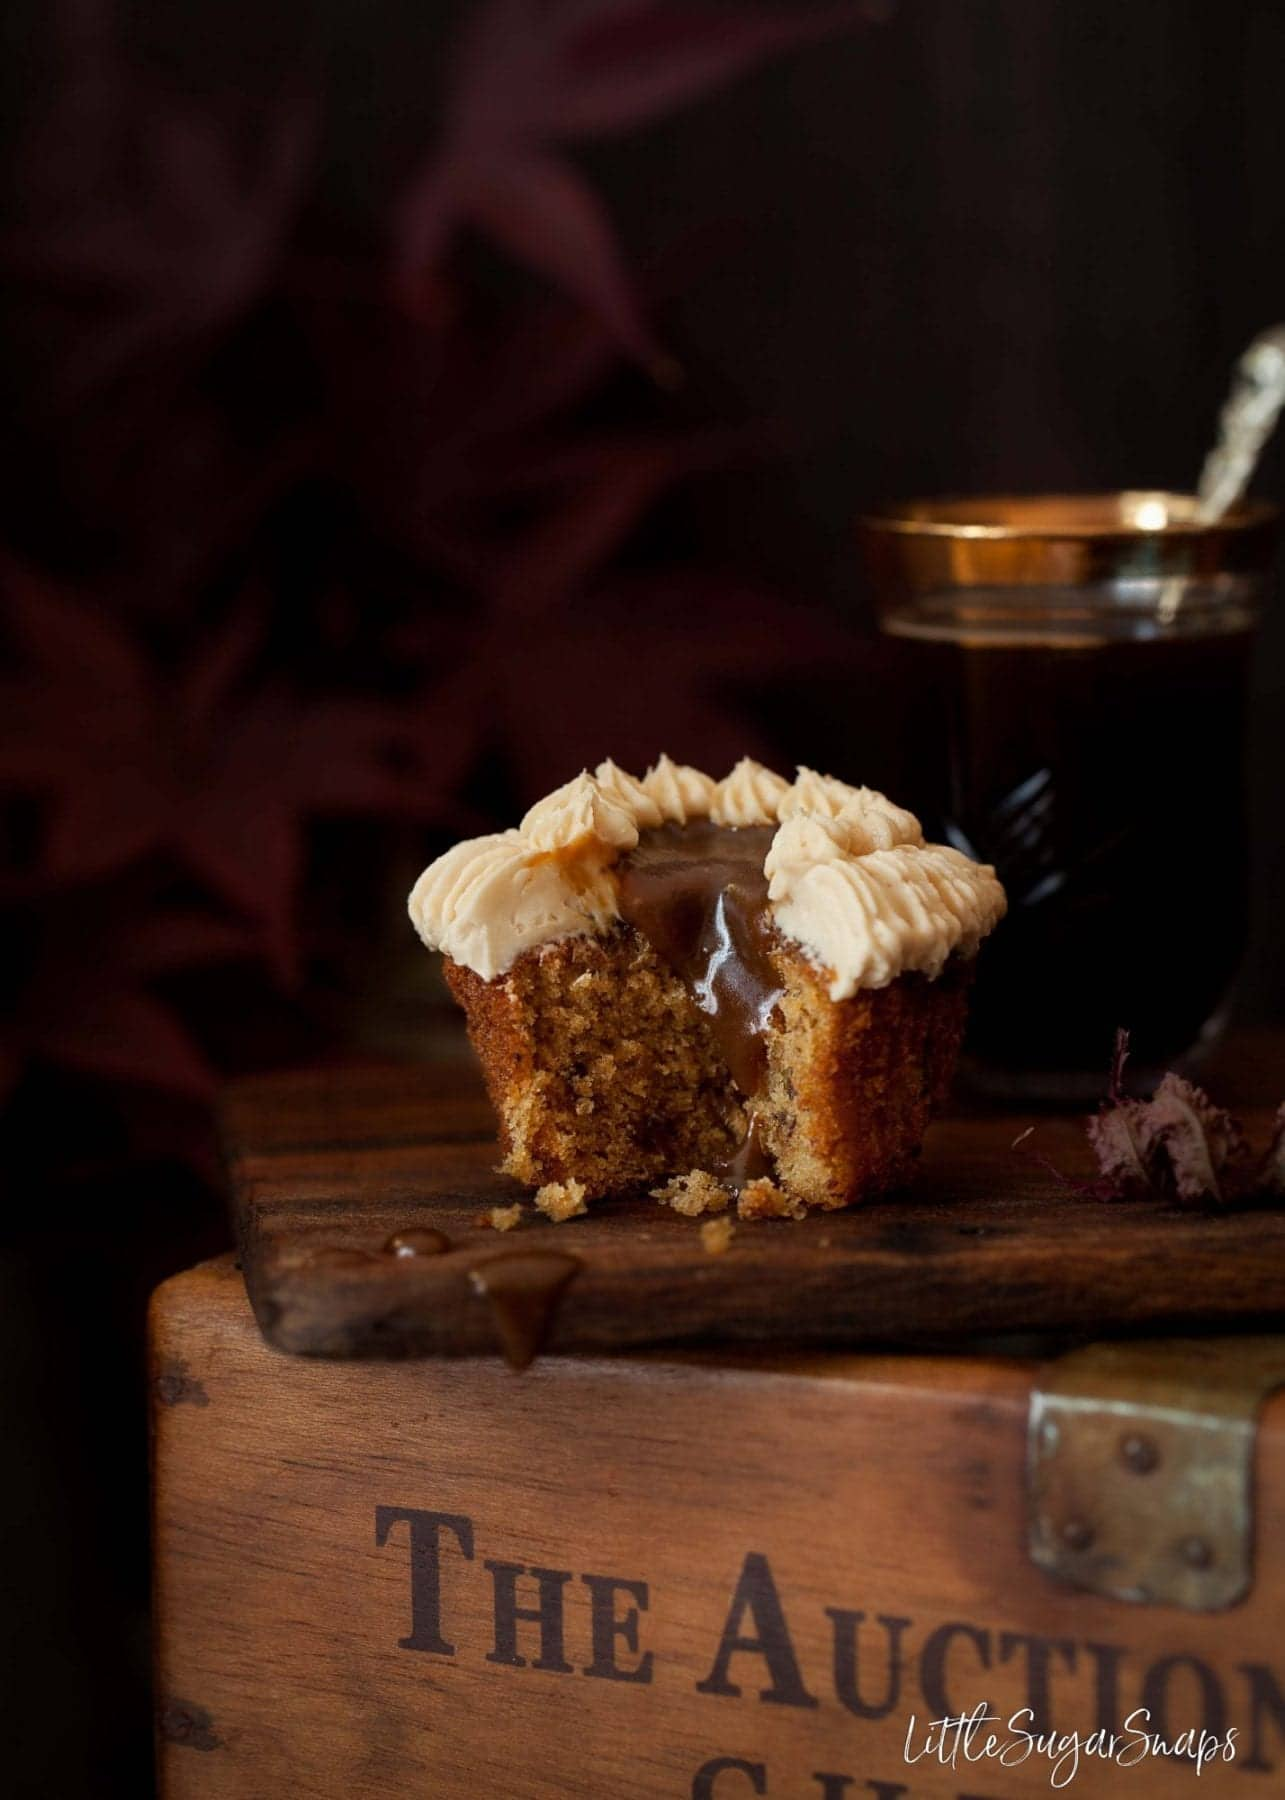 Sticky Toffee Pudding Cupcake cut open with sauce running down the inside. One a wooden board